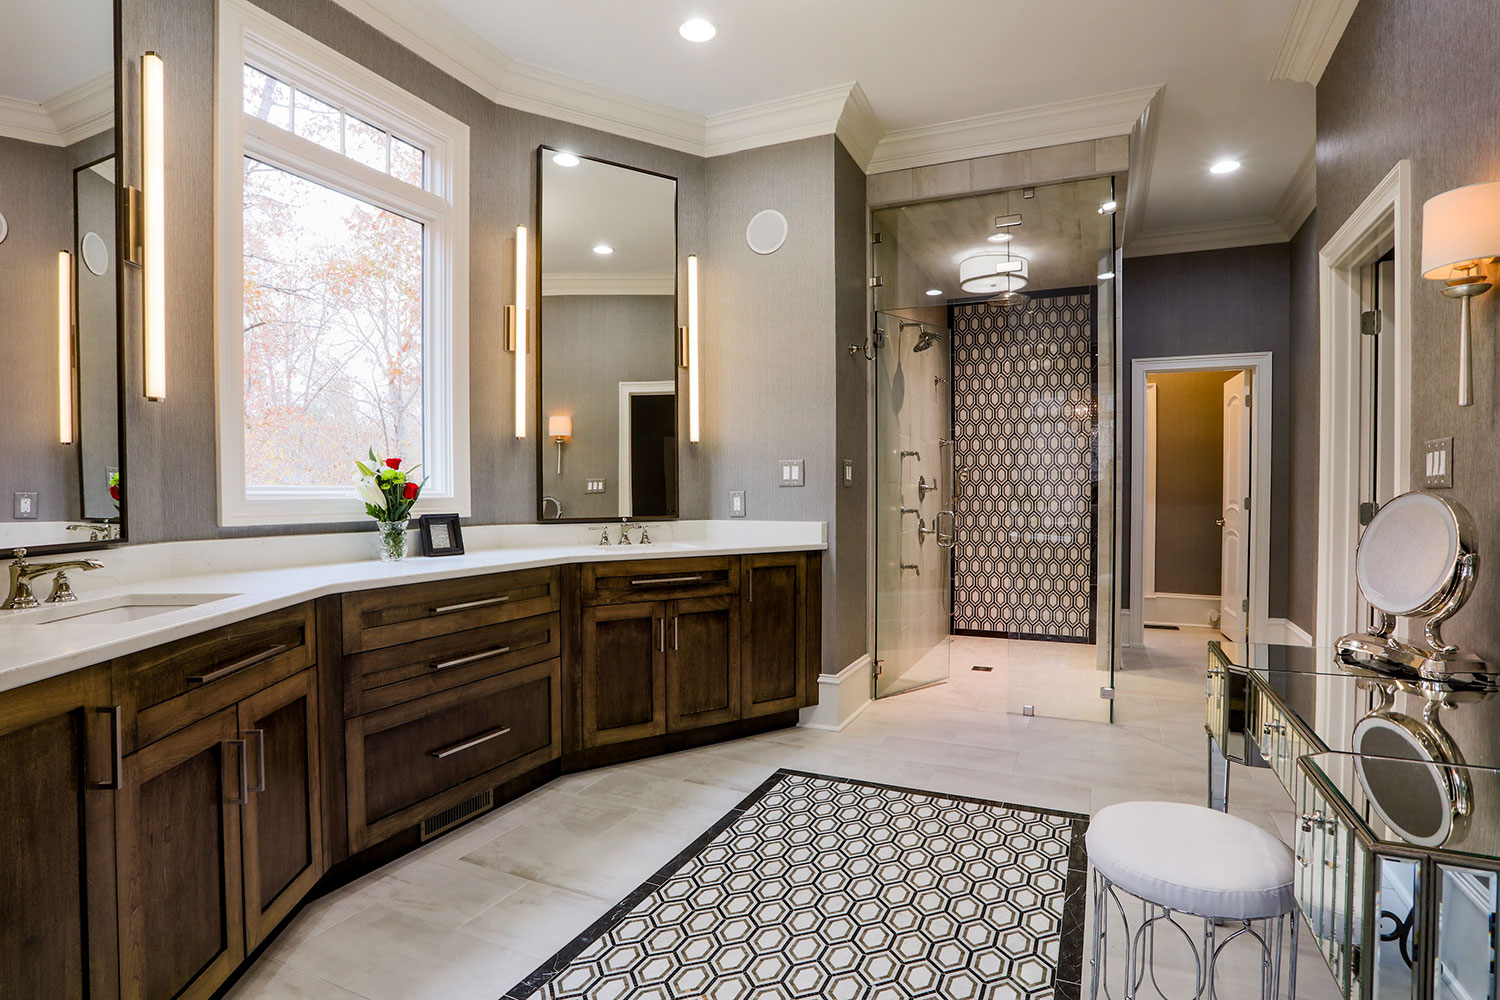 Bathrooms_4: Hodge Design and Remodeling